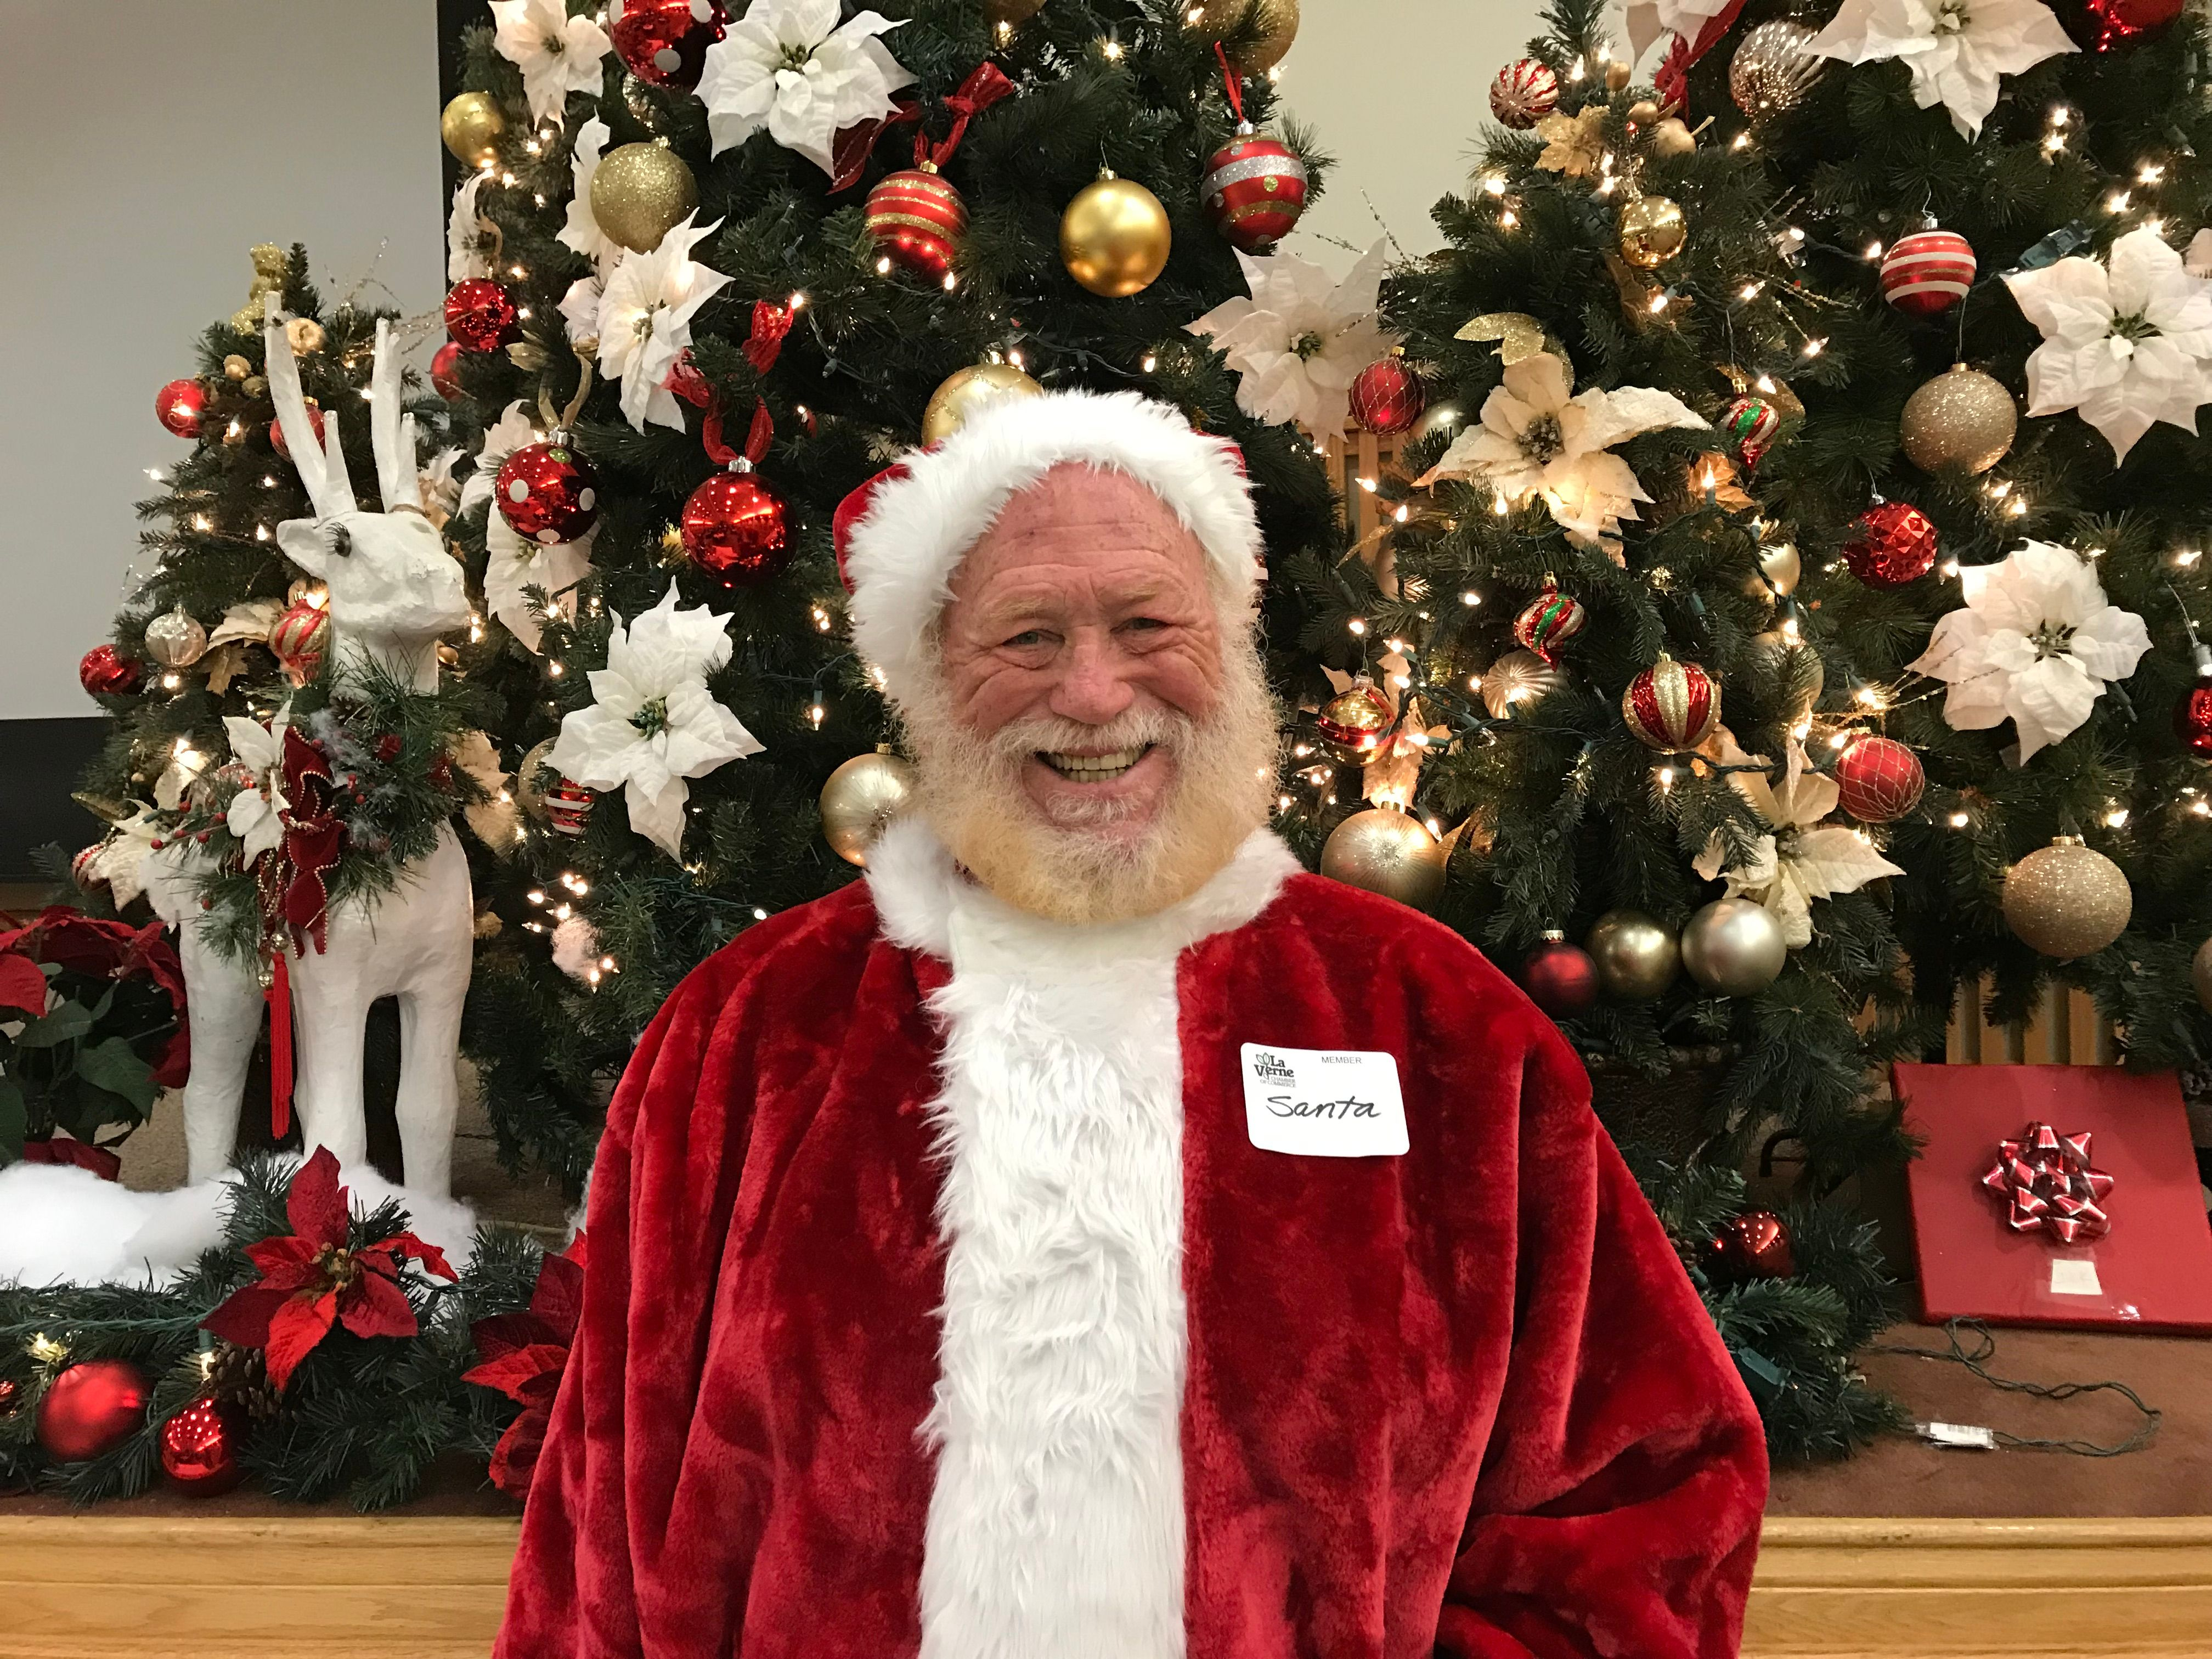 Meet the Real Santa at the Annual Holiday Open House, Sat. Dec. 8